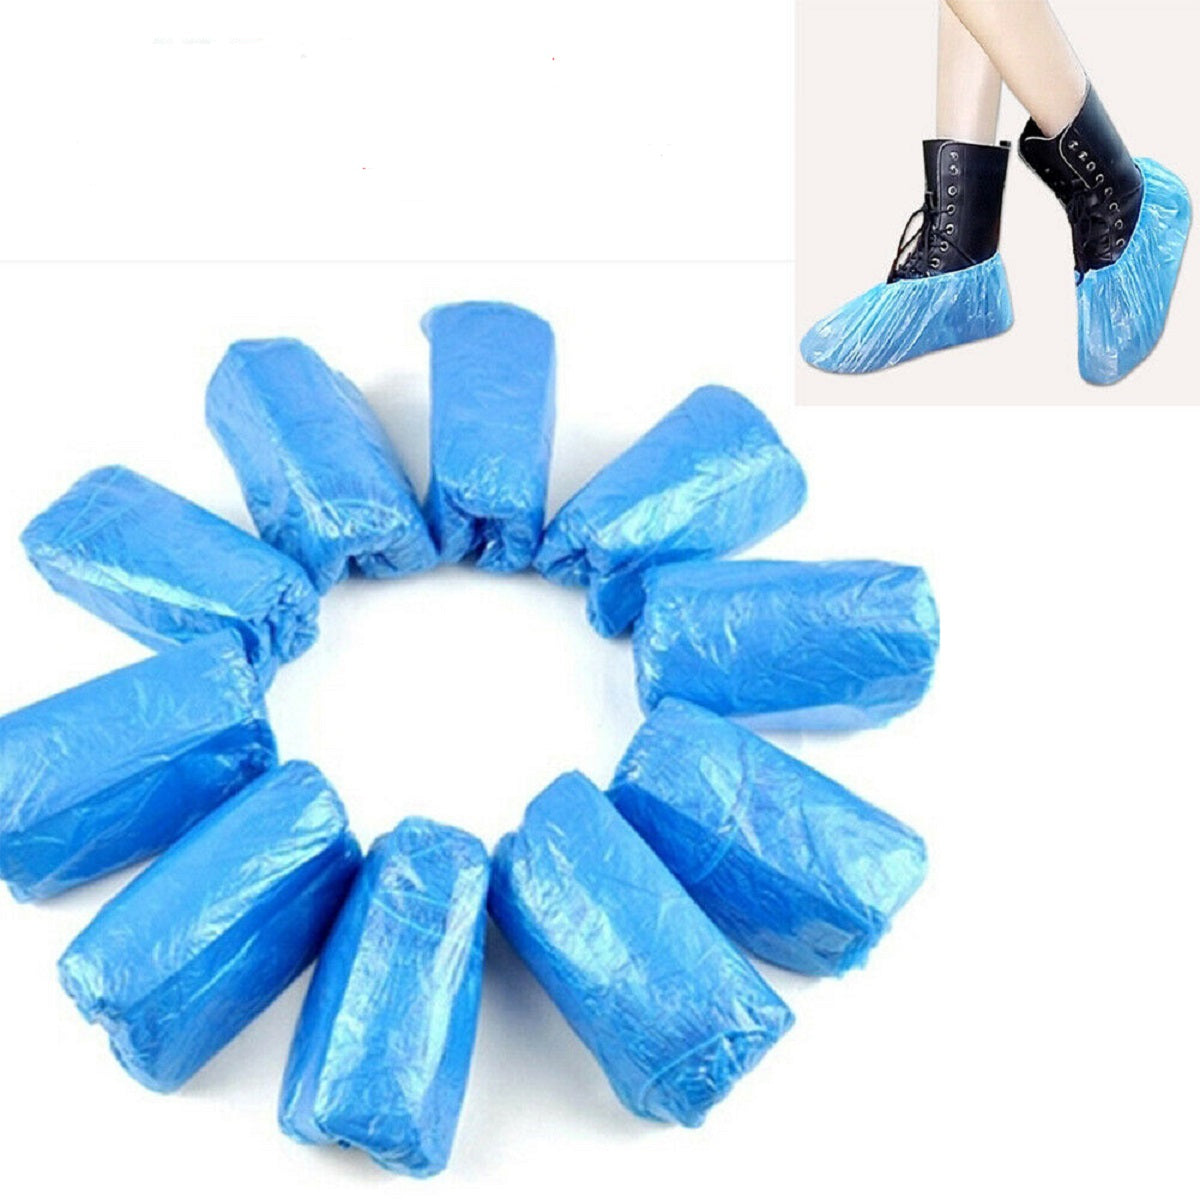 100PCS Waterproof Boot Plastic Cover Disposable Hospitality Medical Covers Shoe